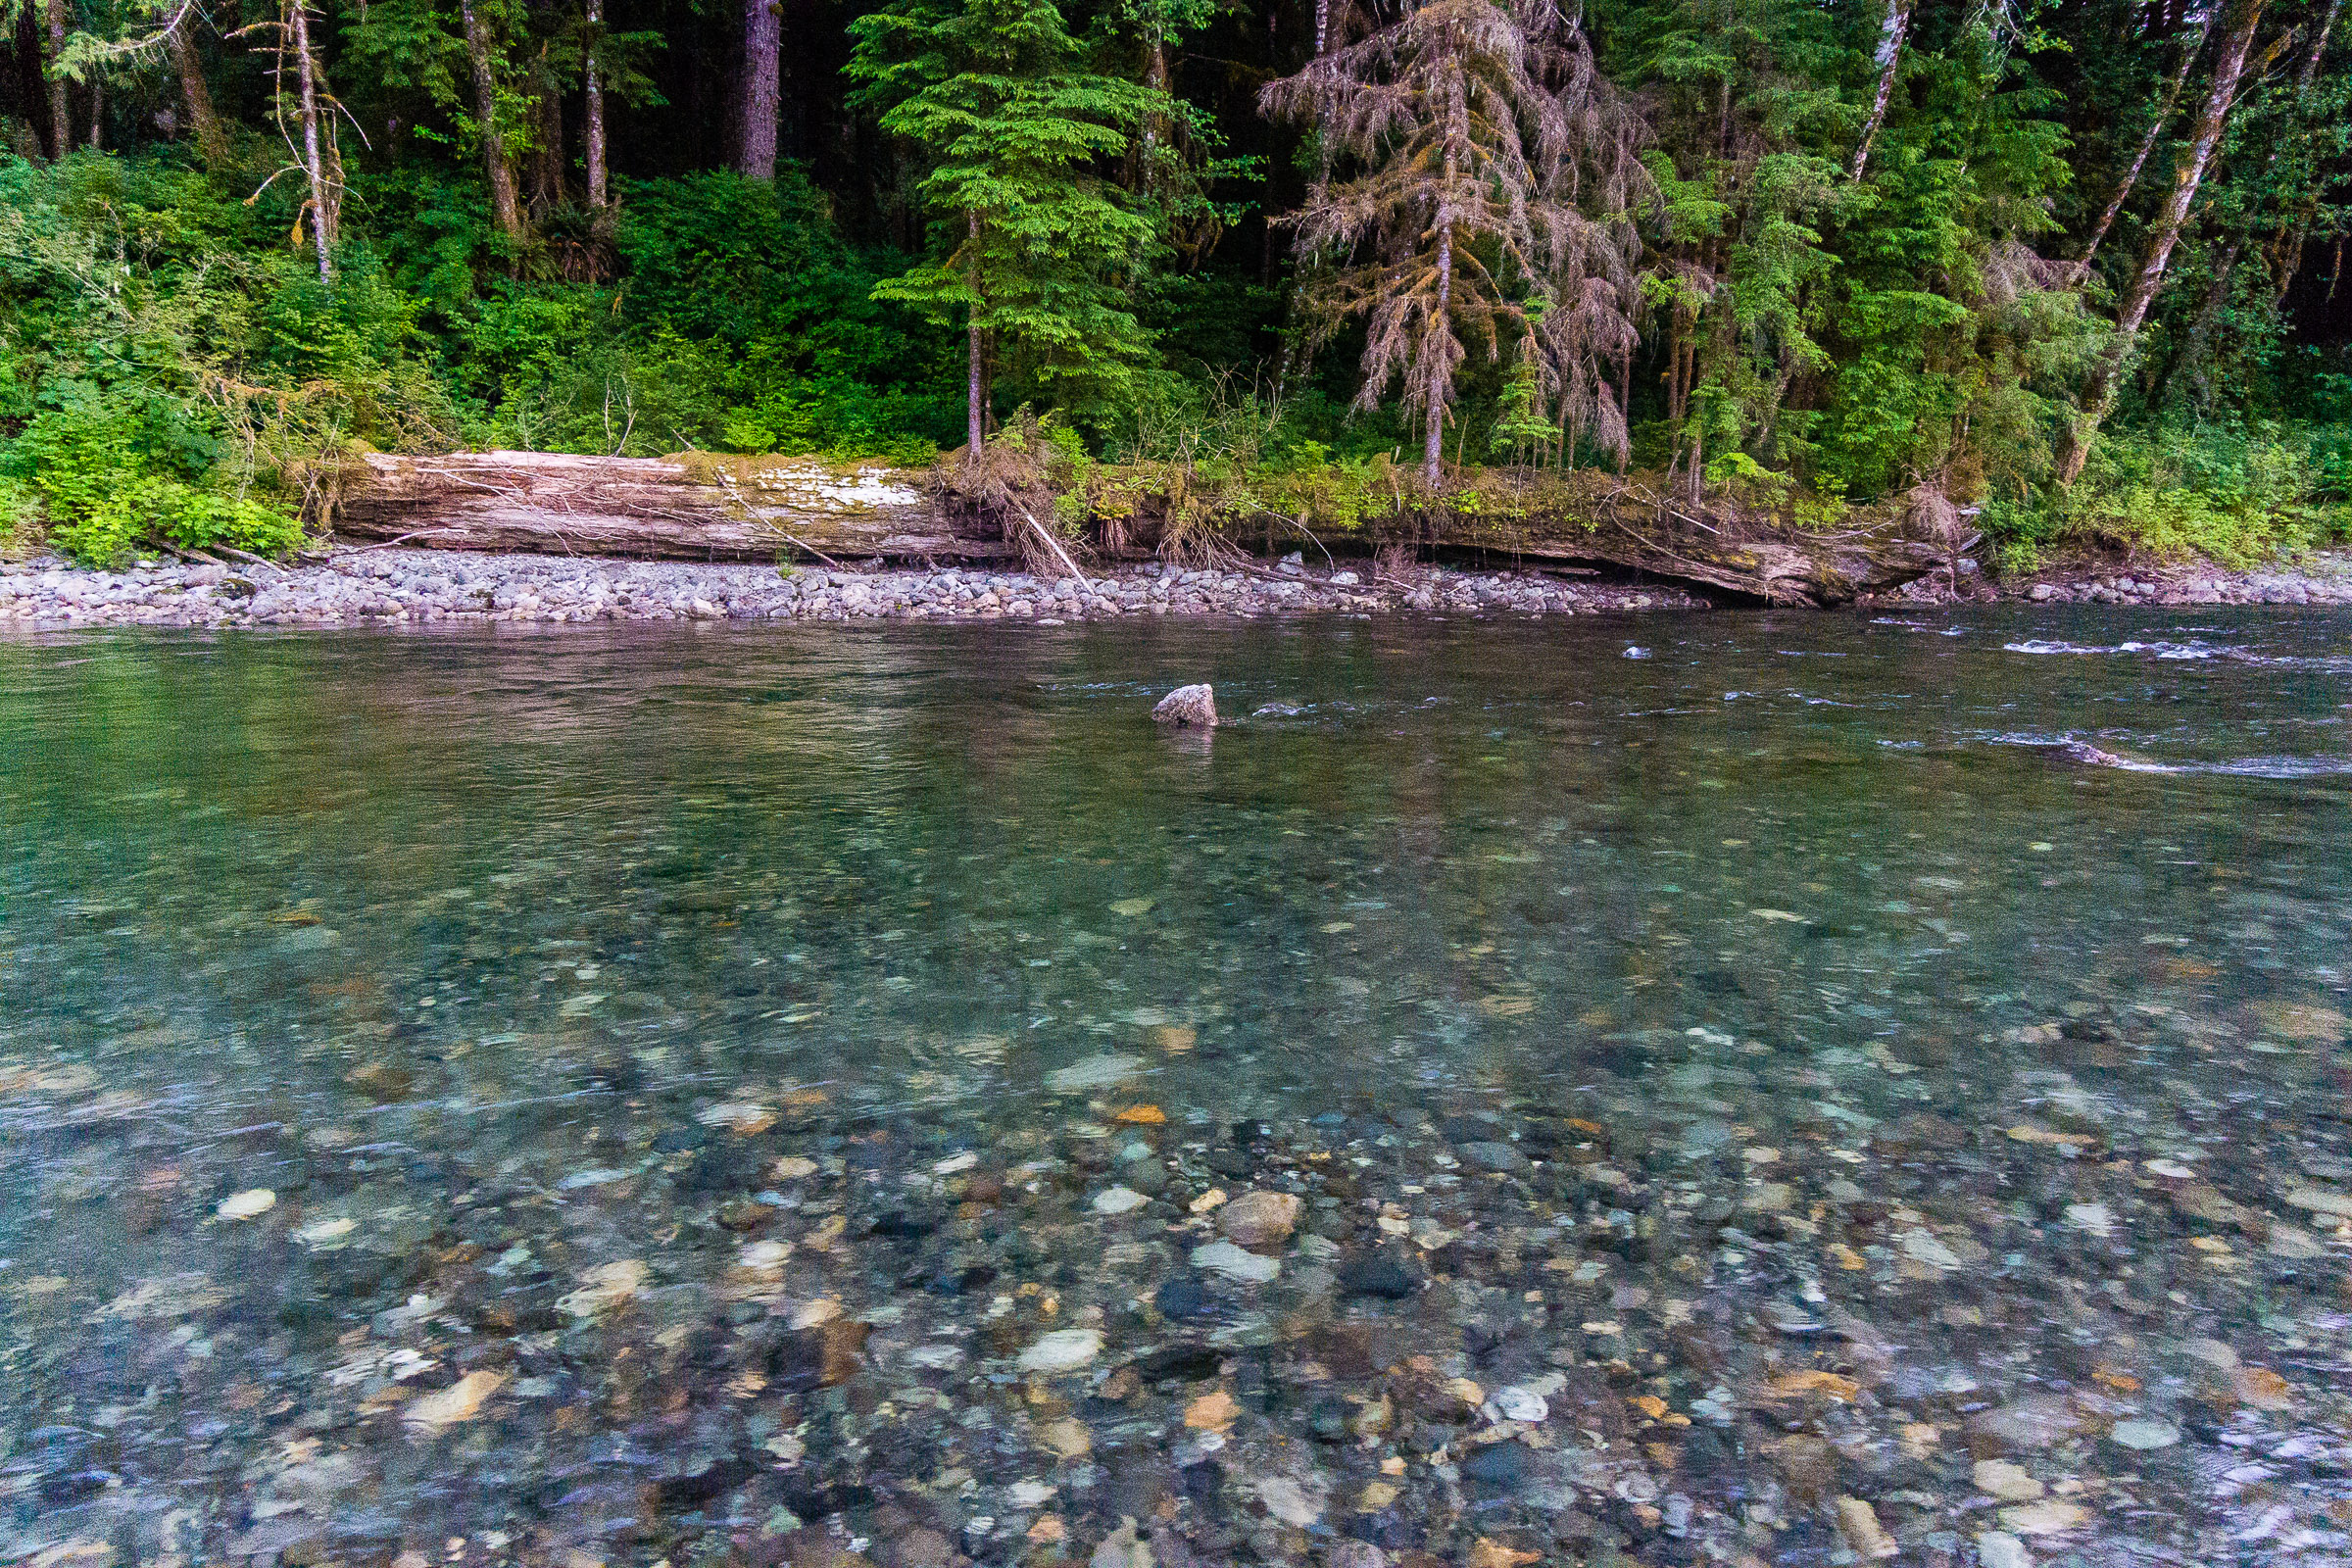 Picture from for Wa fly fishing forum